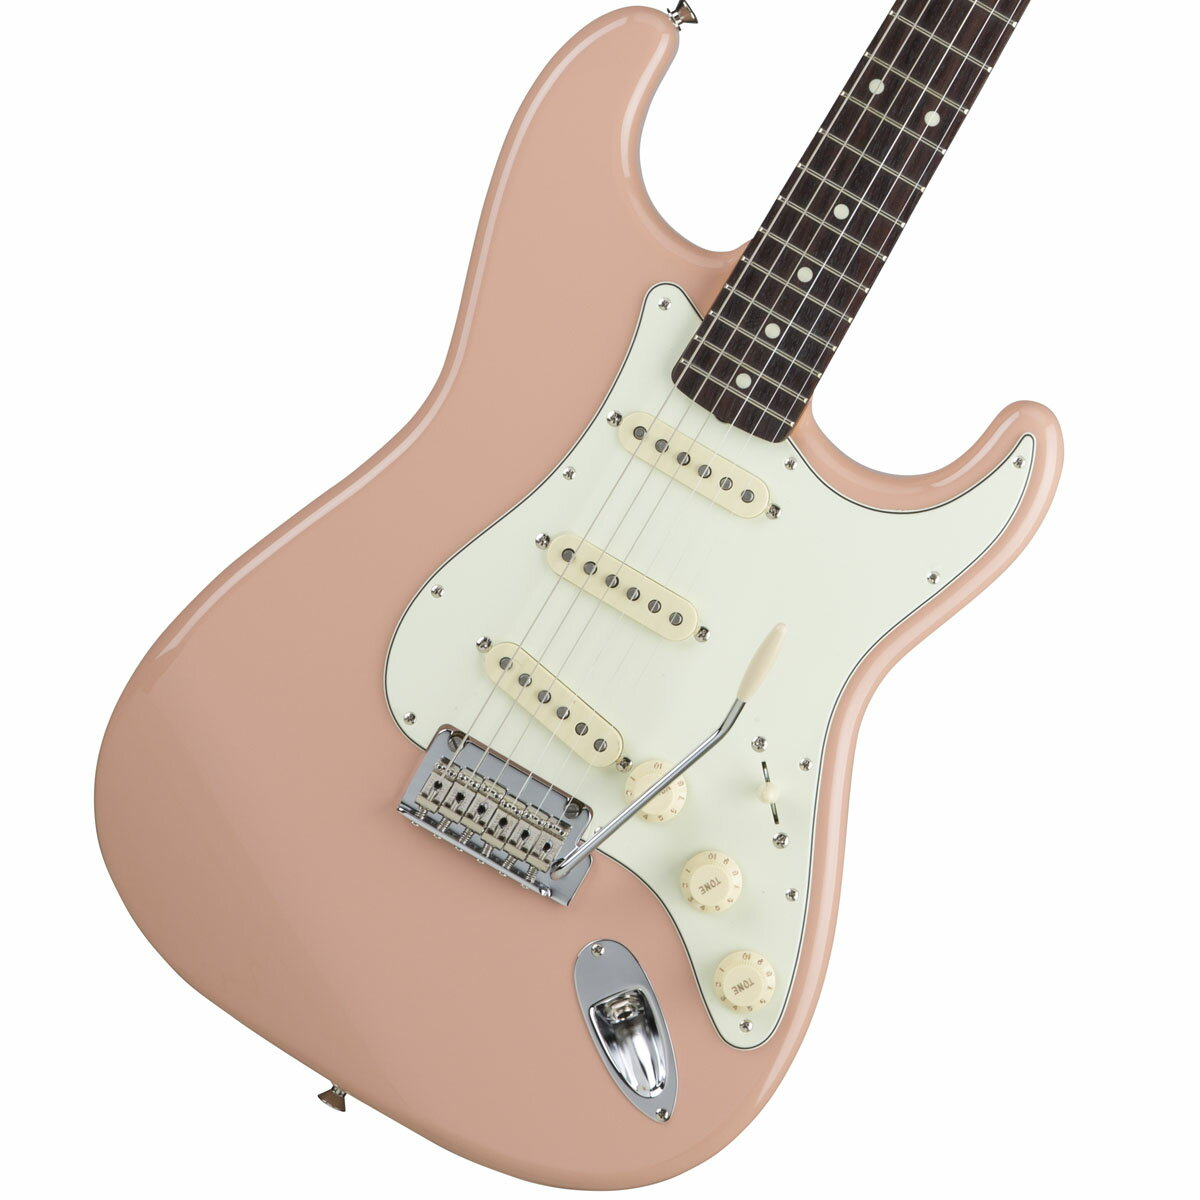 Fender / Made in Japan Hybrid 60s Stratocaster Flamingo Pink 《カスタムショップのお手入れ用品を進呈/+671038200》